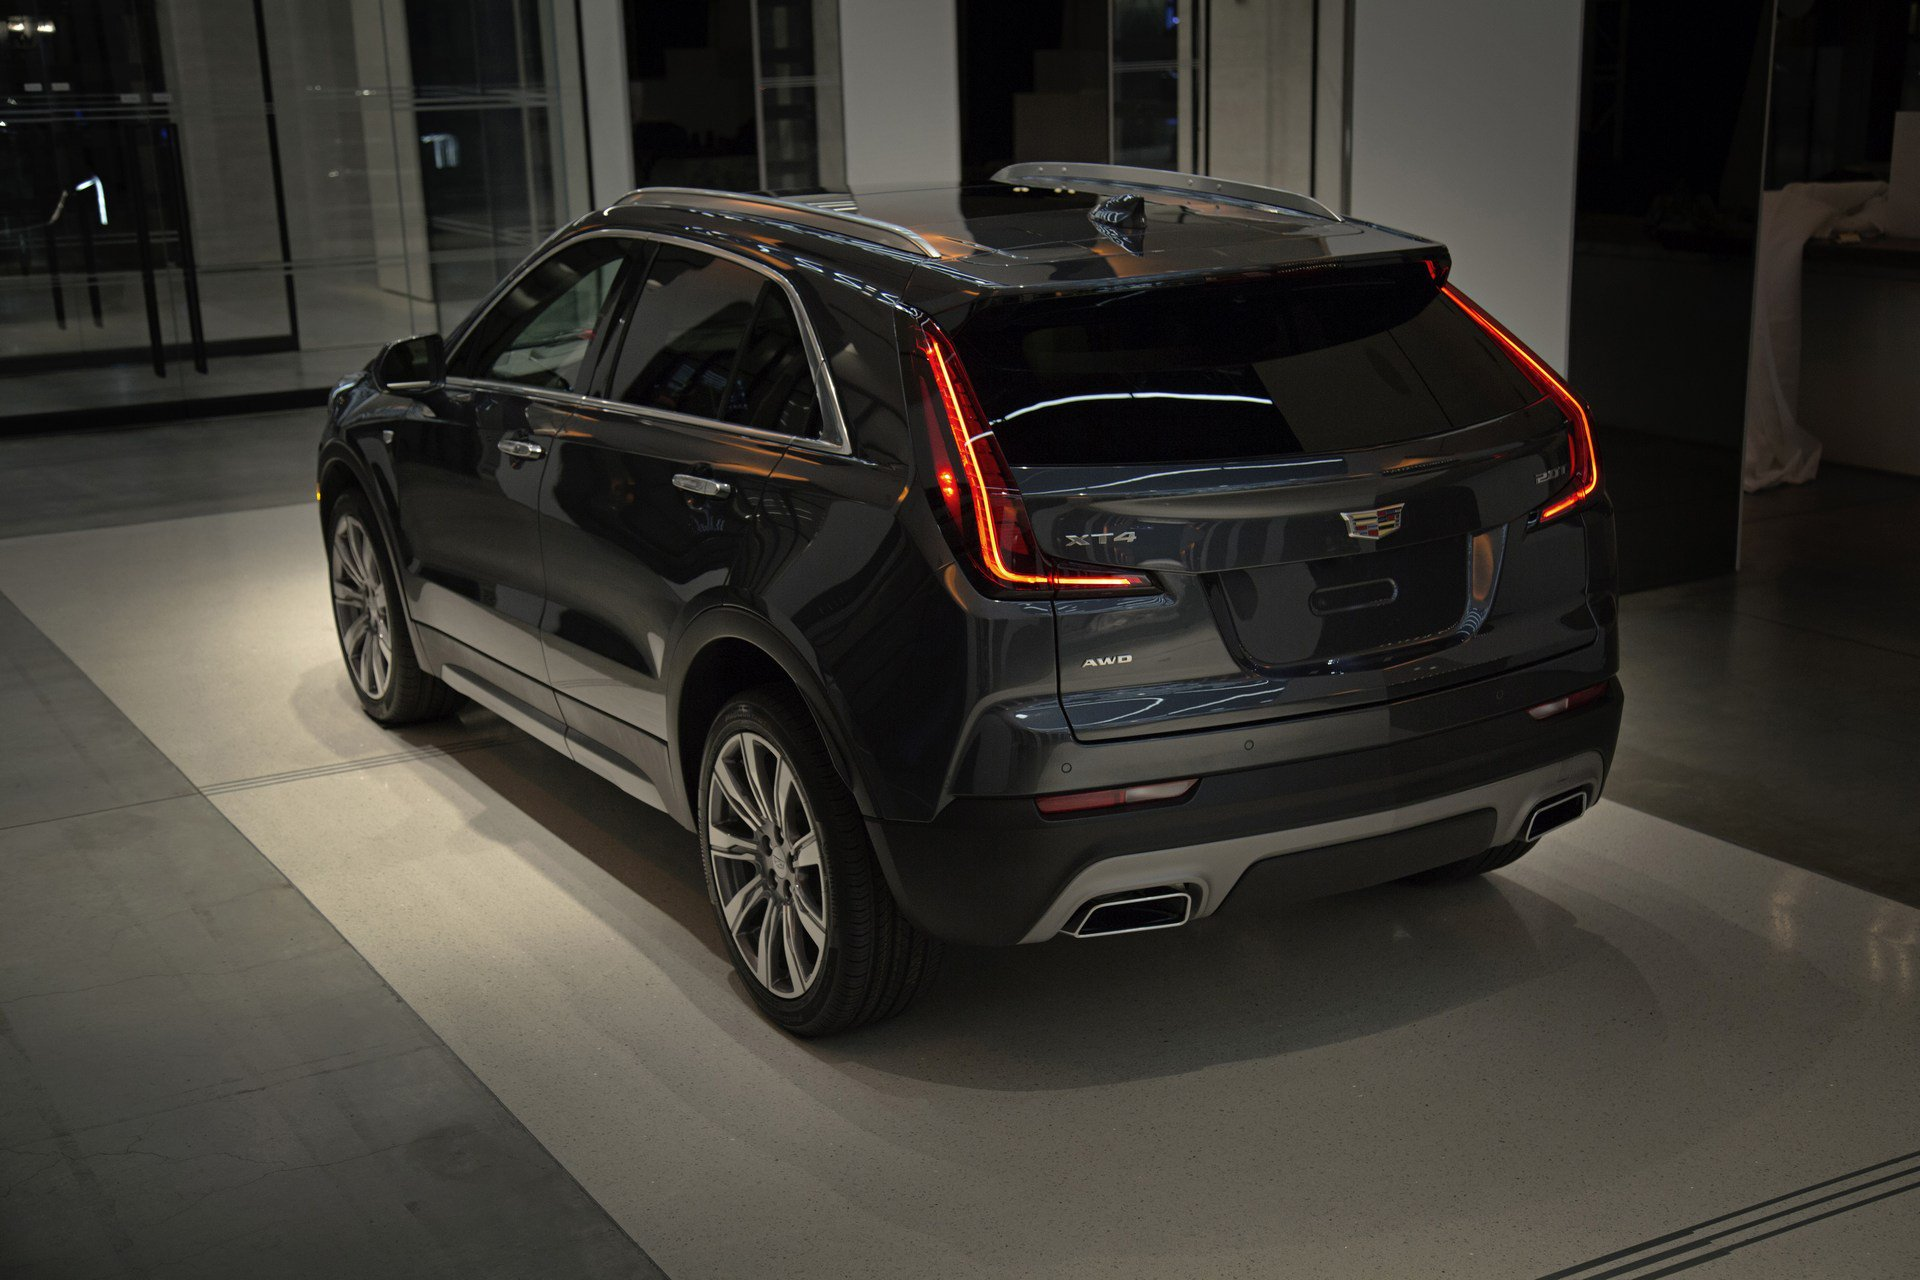 2019 Cadillac XT4 'Baby' SUV Debuts With Turbo Power And Affordable Price